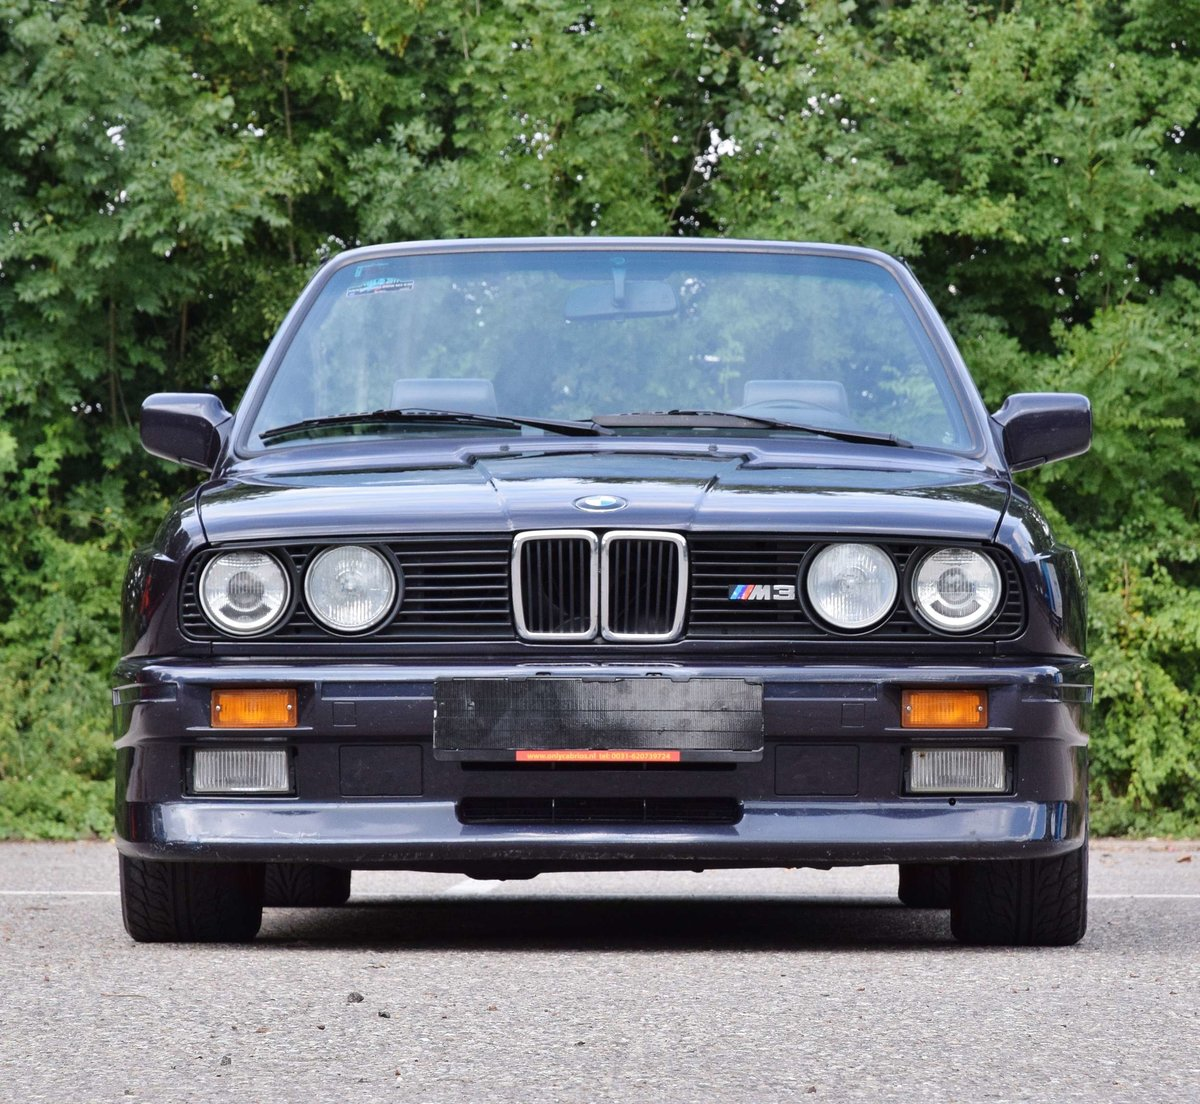 1991 BMW M3 cabrio E30 macaoblauw 144000 km black leather + airco For Sale (picture 5 of 6)